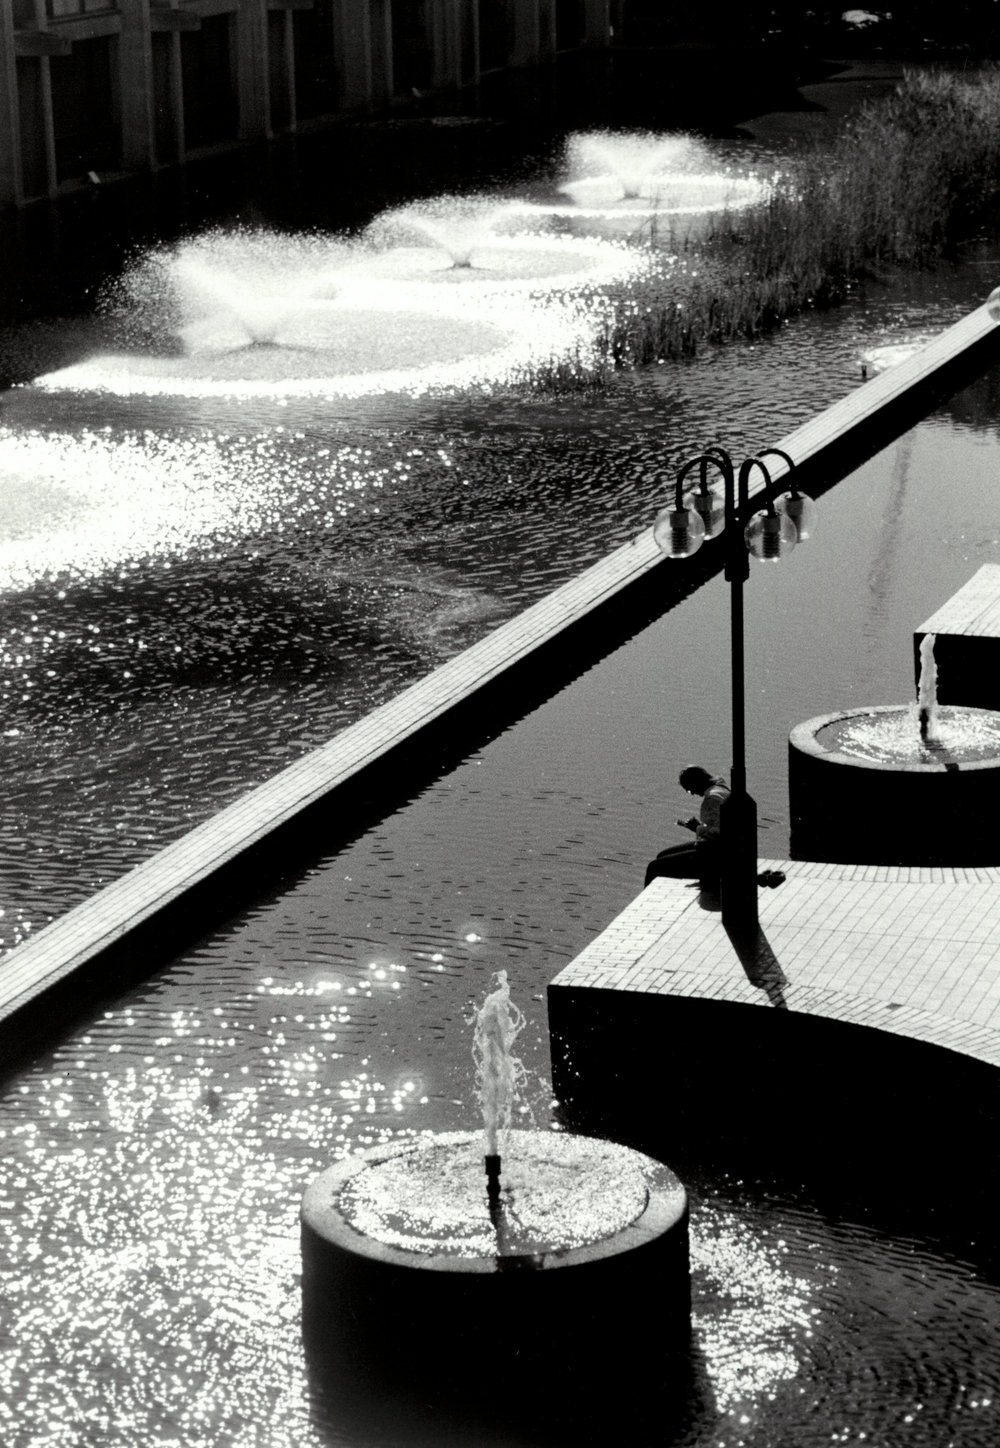 Water, The Barbican